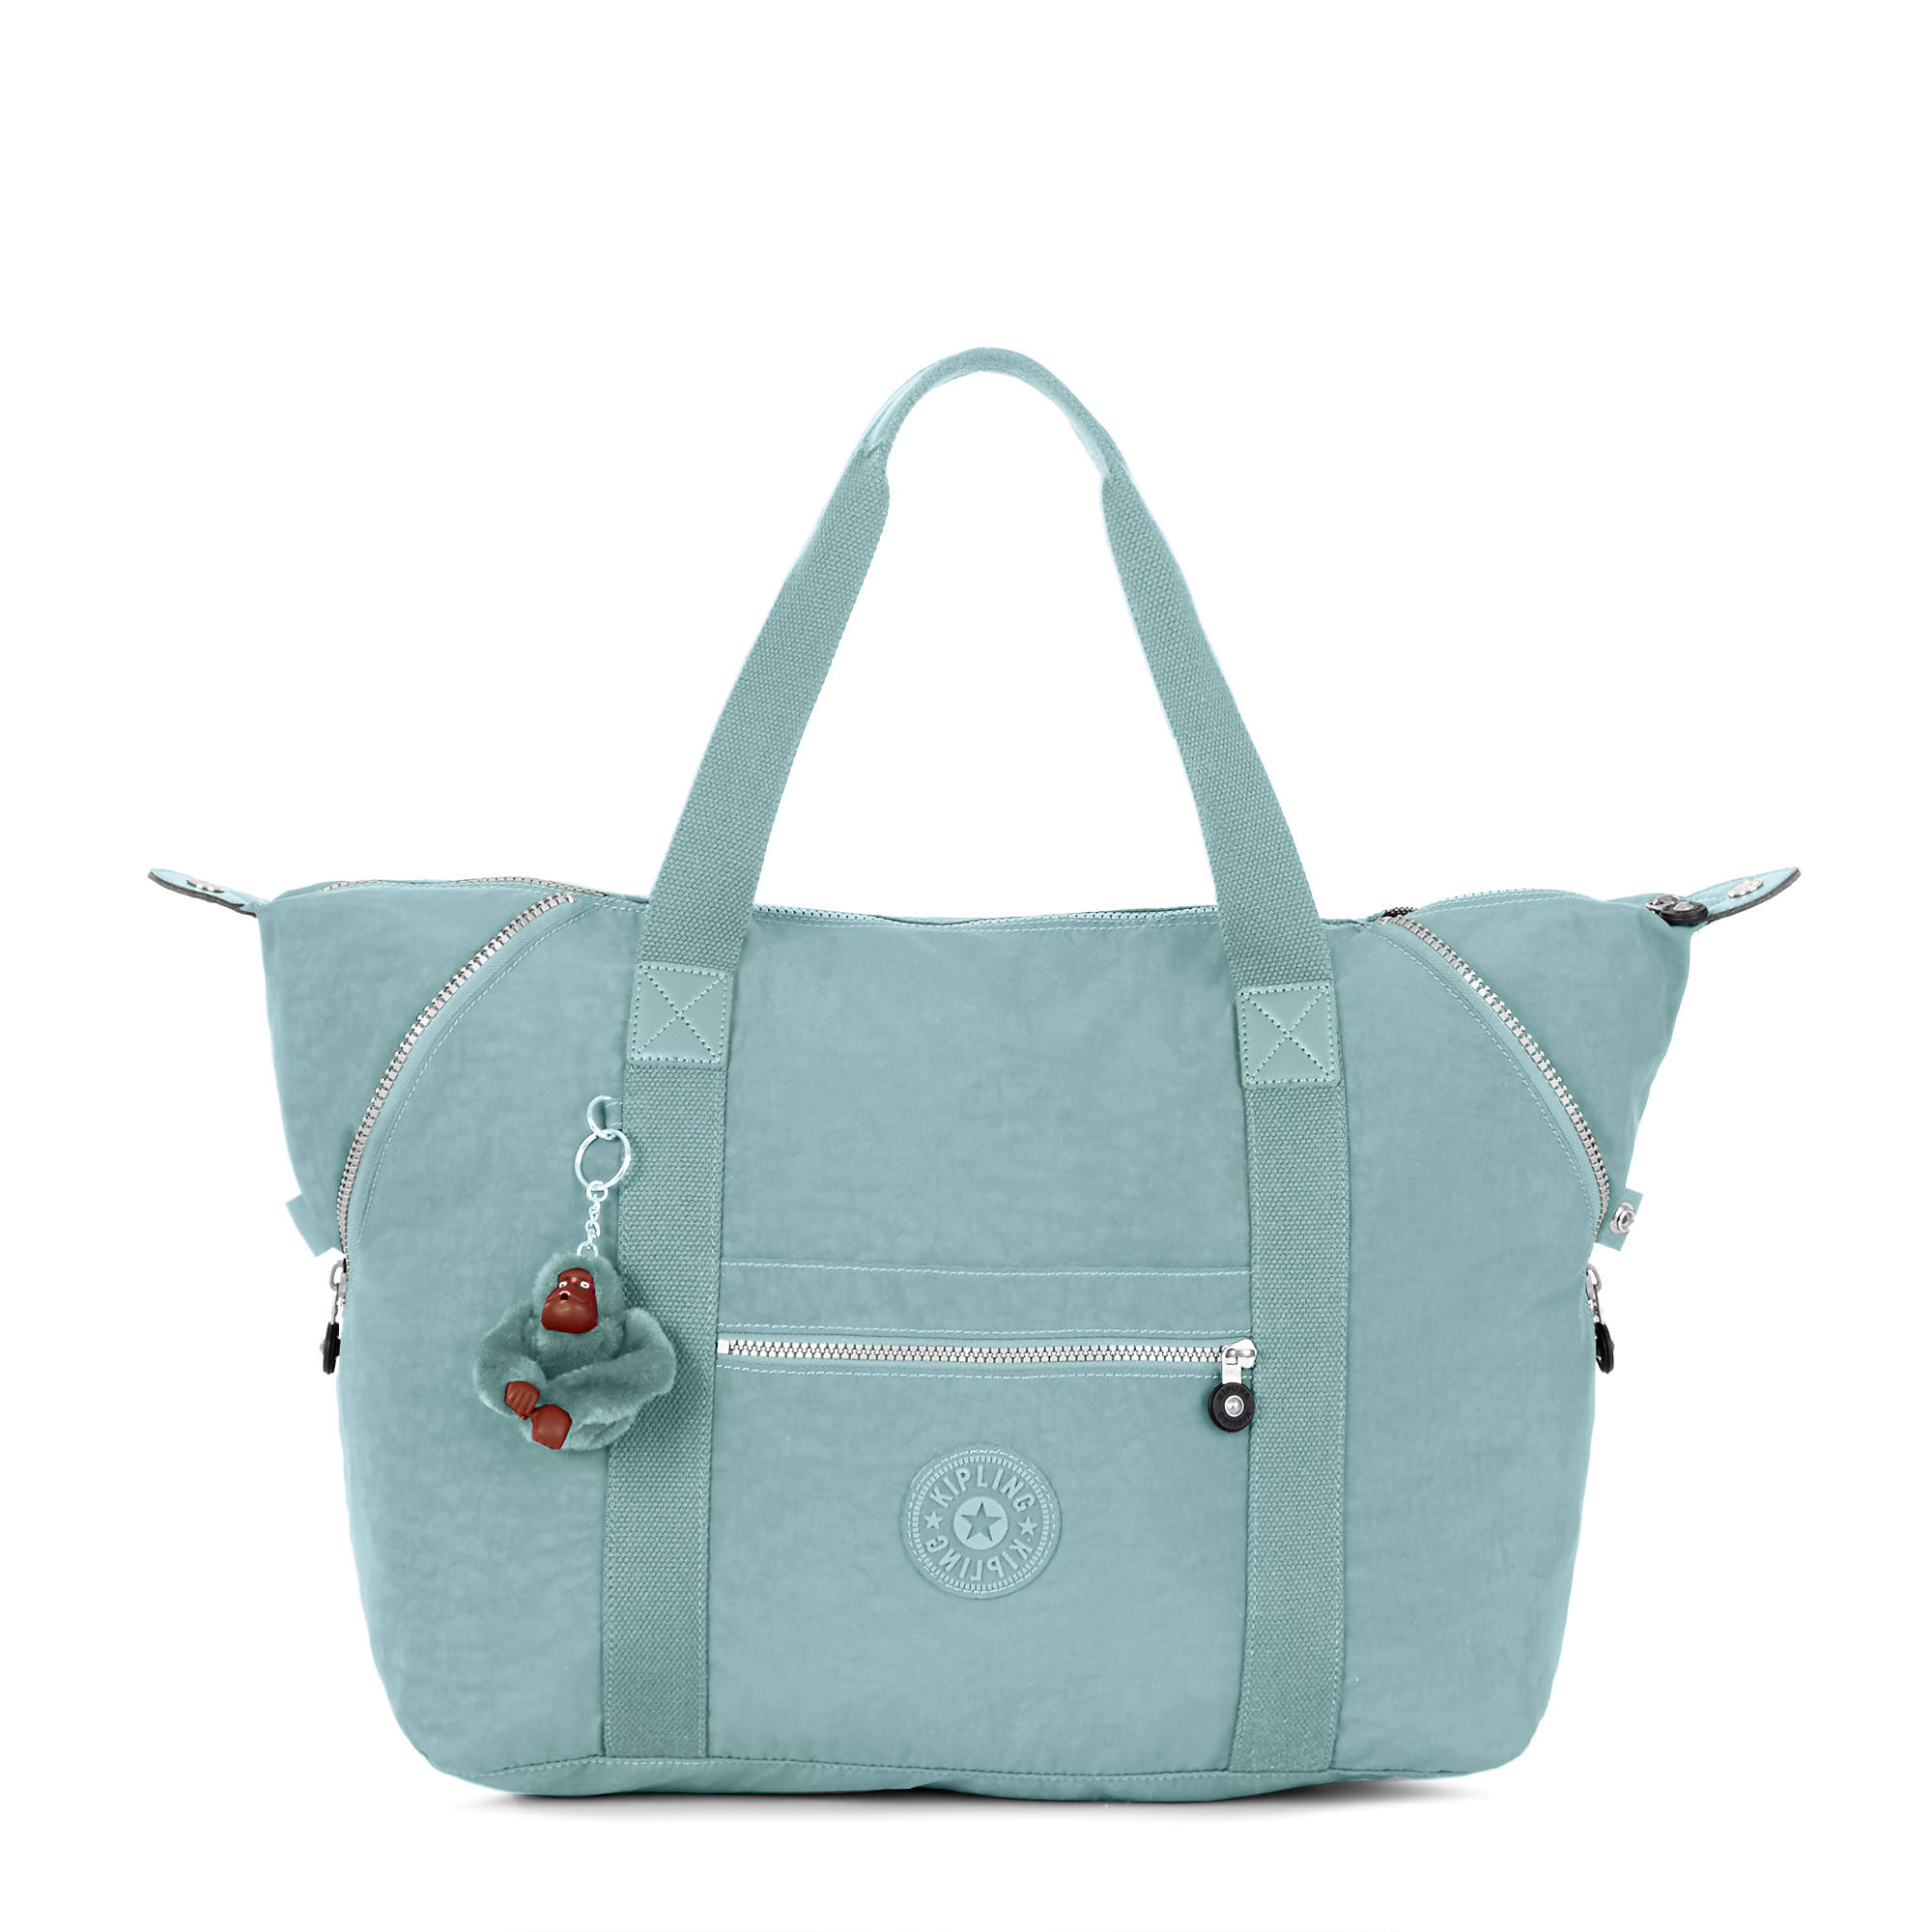 0795b12aaa Art Medium Tote Bag,Sea Green,large